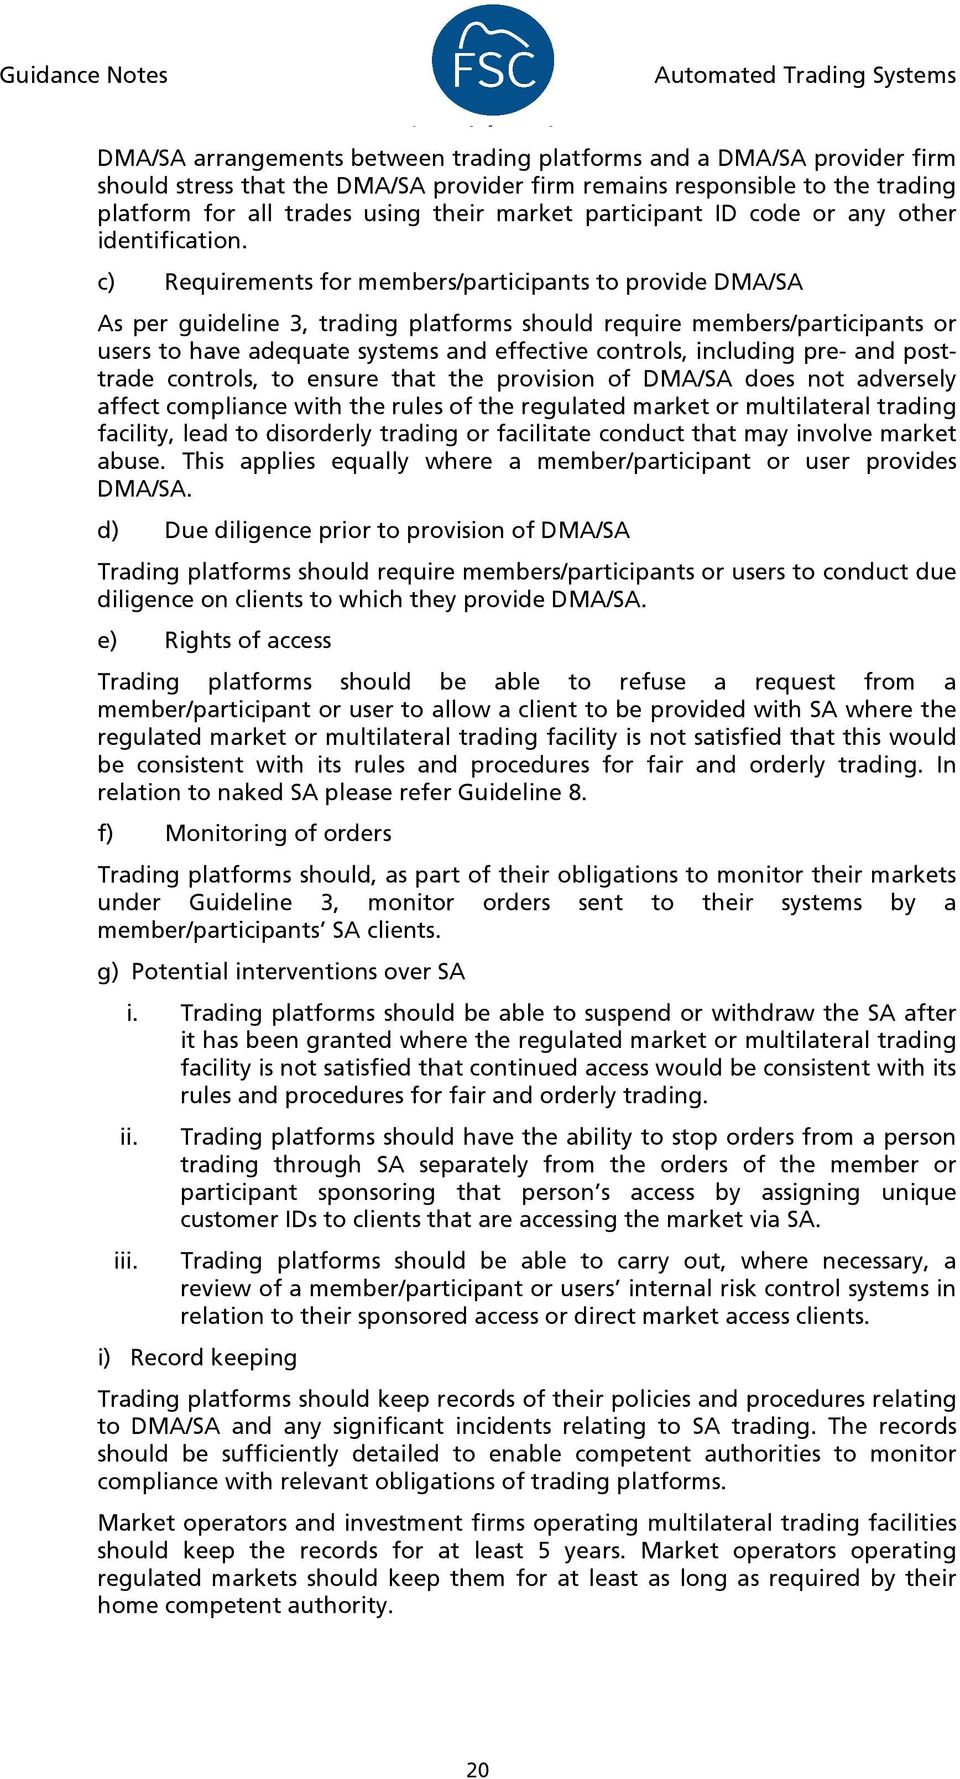 c) Requirements for members/participants to provide DMA/SA As per guideline 3, trading platforms should require members/participants or users to have adequate systems and effective controls,